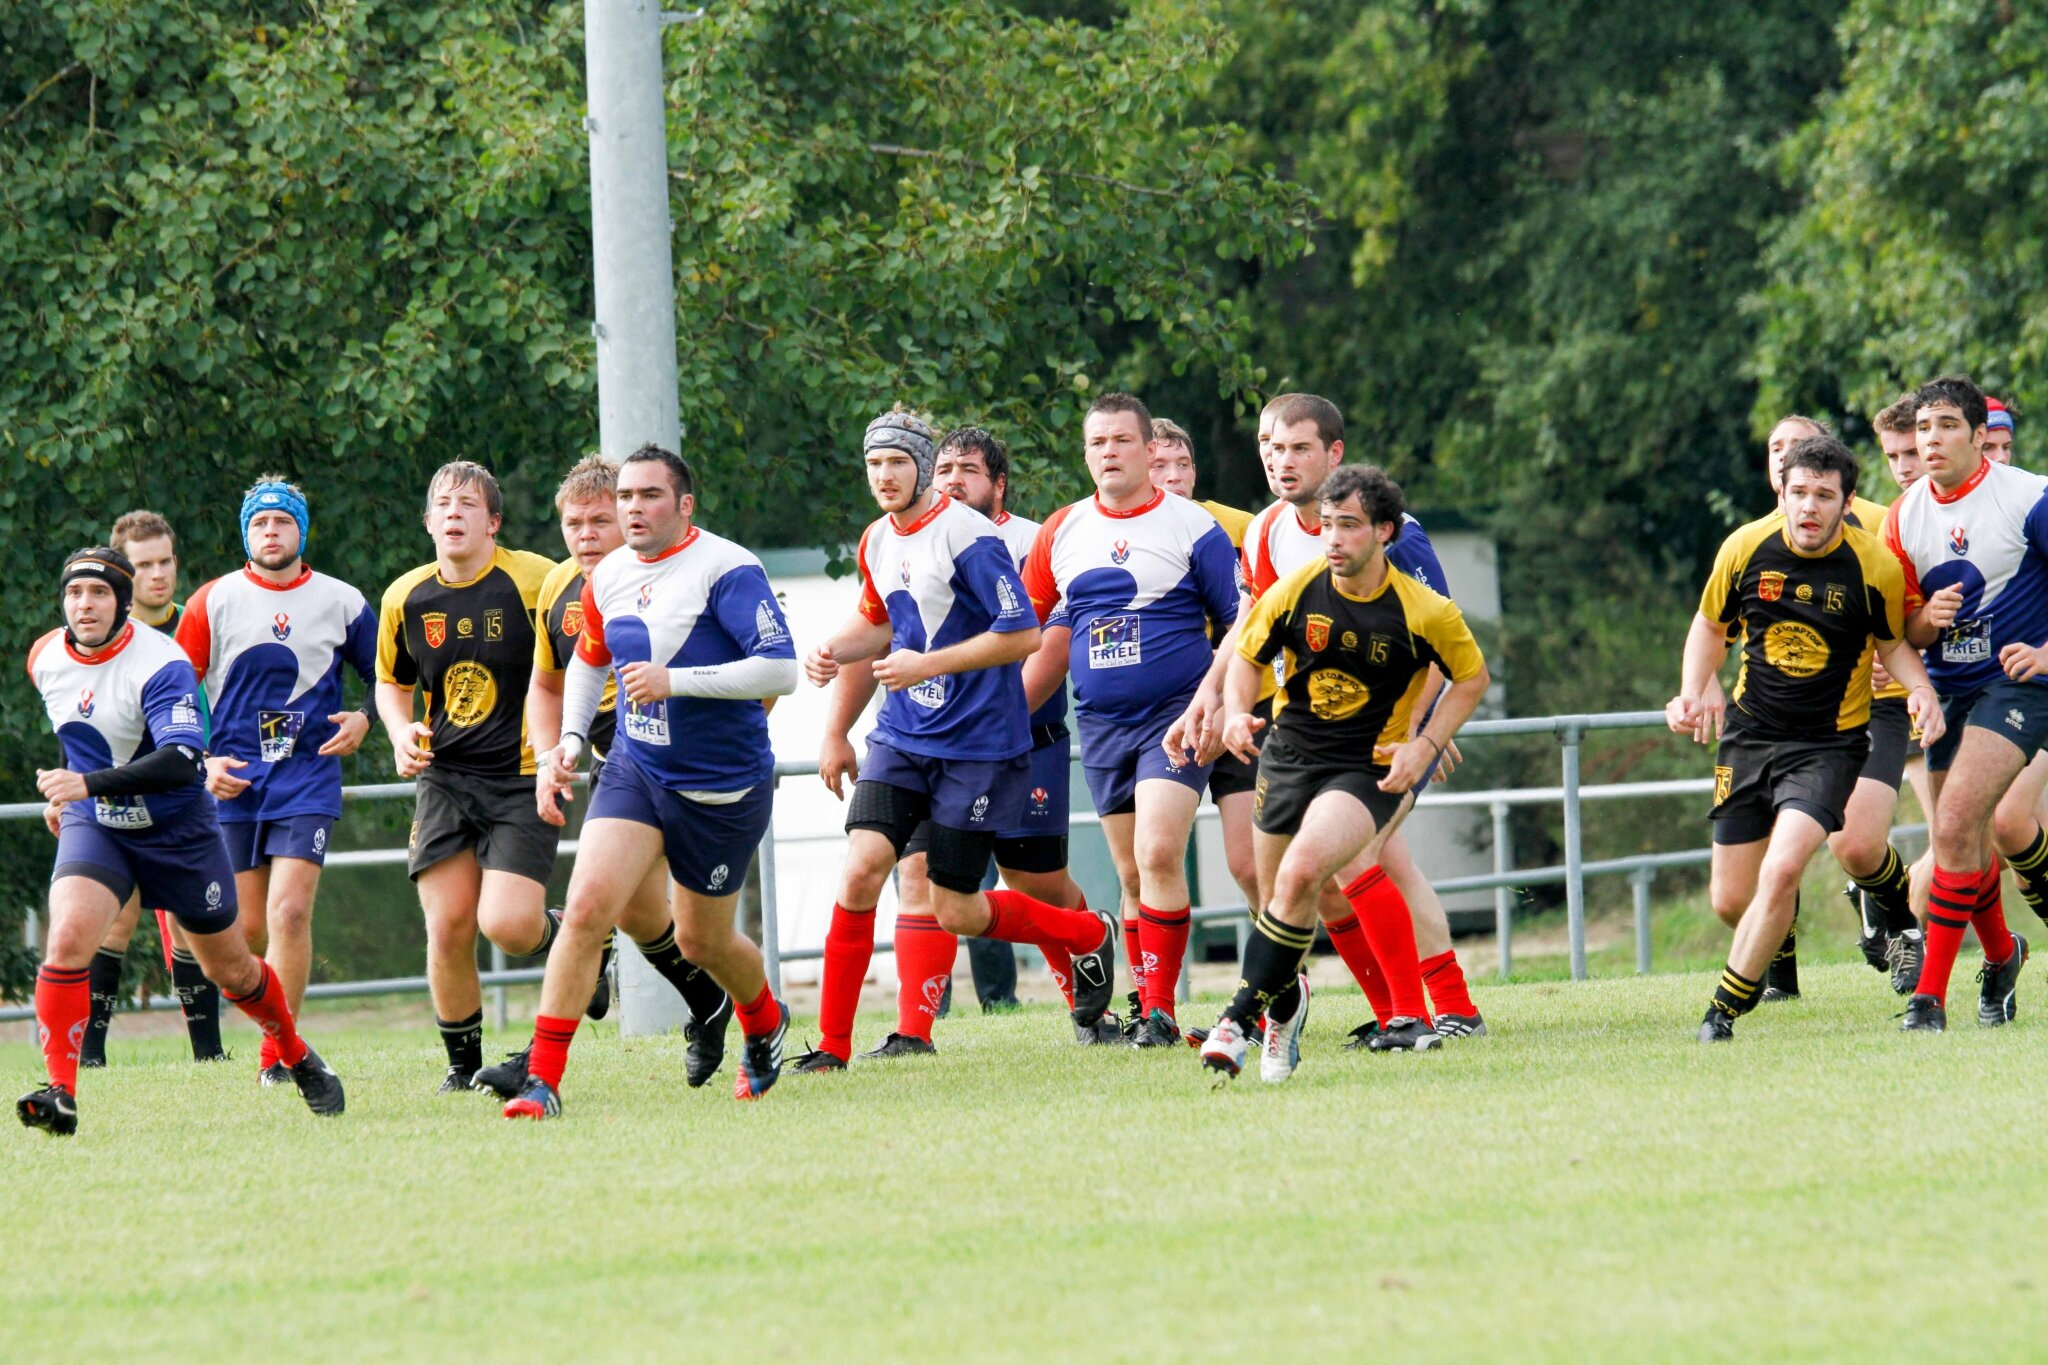 RCT-RCP15-R12